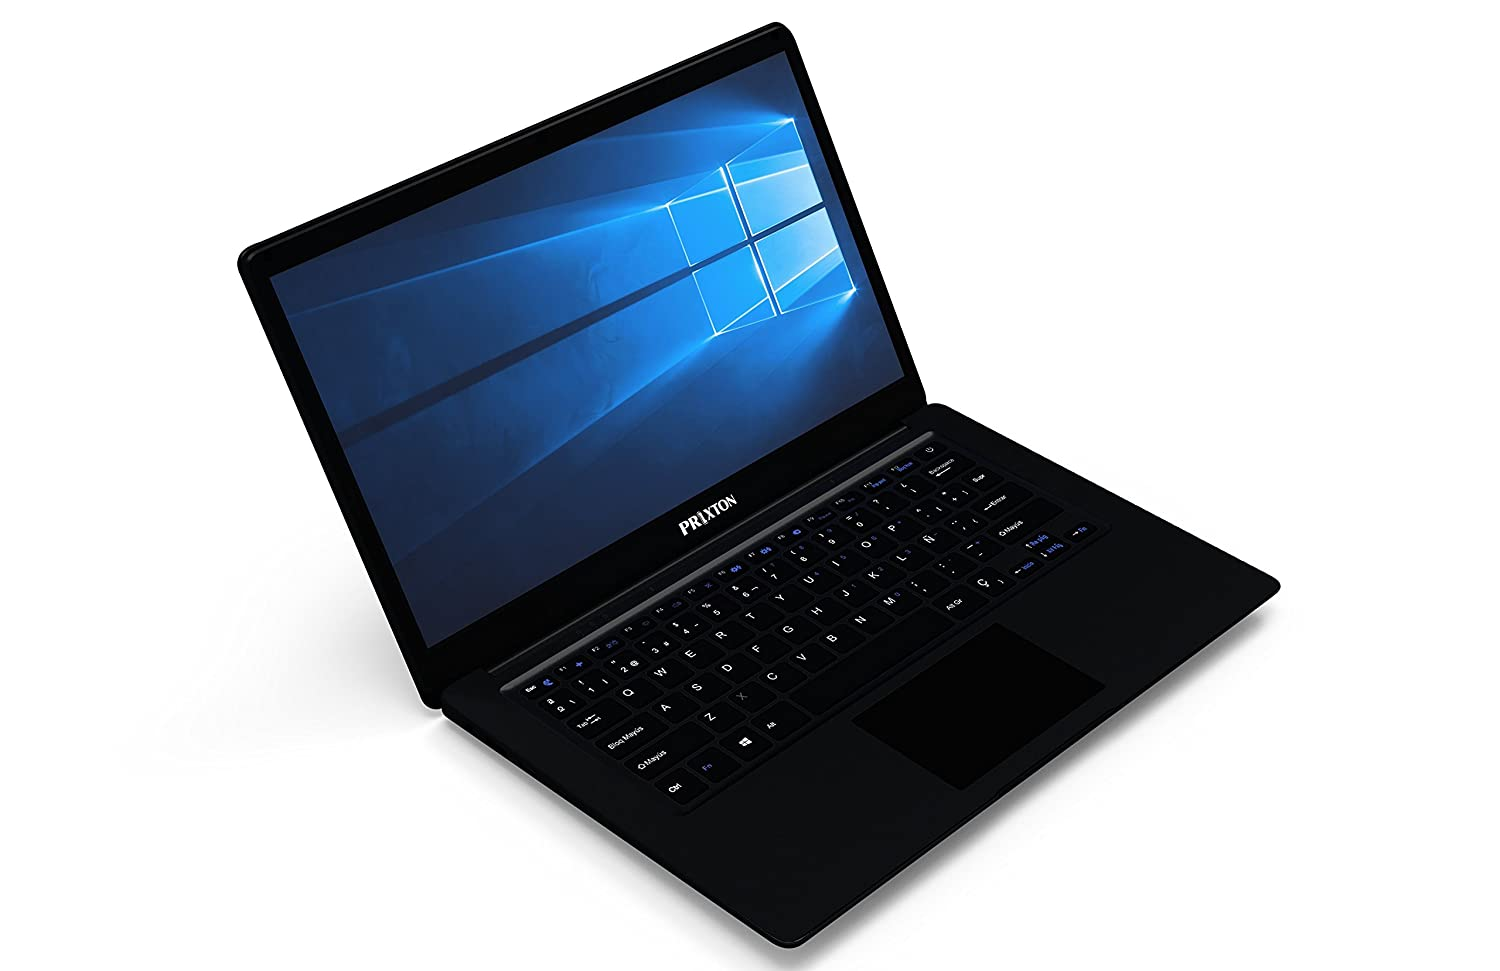 PRIXTON Ordinateur portable 14.1' PC14 Ultrabook (Intel Atom Z8350, 2 Go de RAM, 32 Go eMMC, Windows 10) couleur Noir - Clavier QWERTY (ñ ) Windows 10) couleur Noir - Clavier QWERTY (ñ)